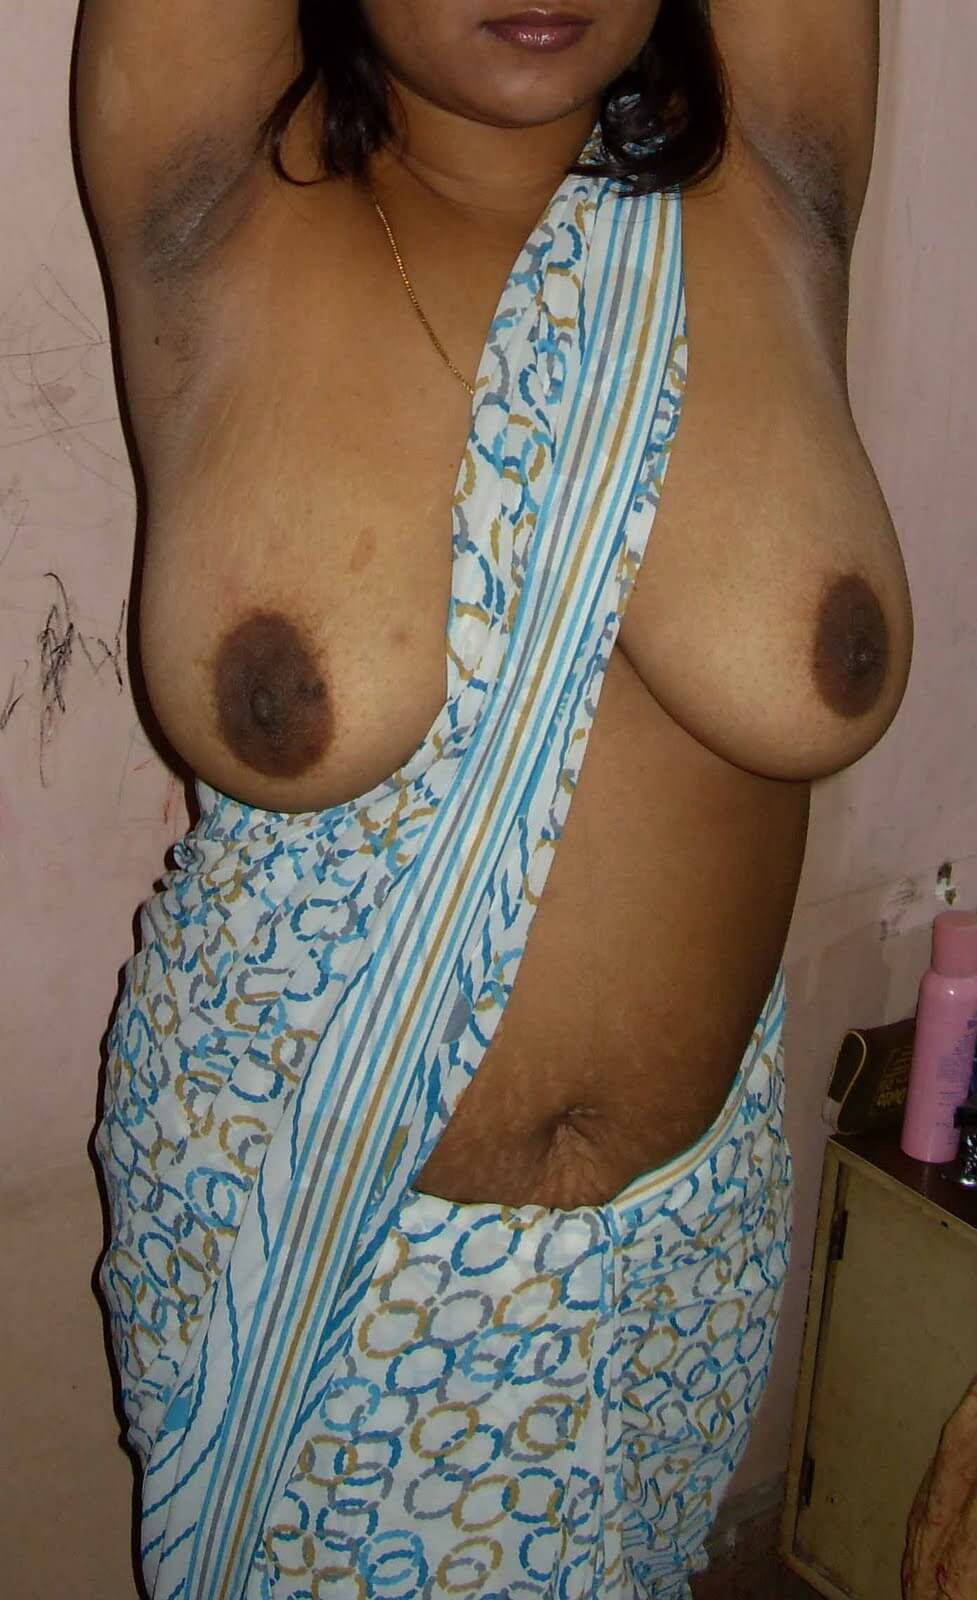 indian girl top secret nude photos